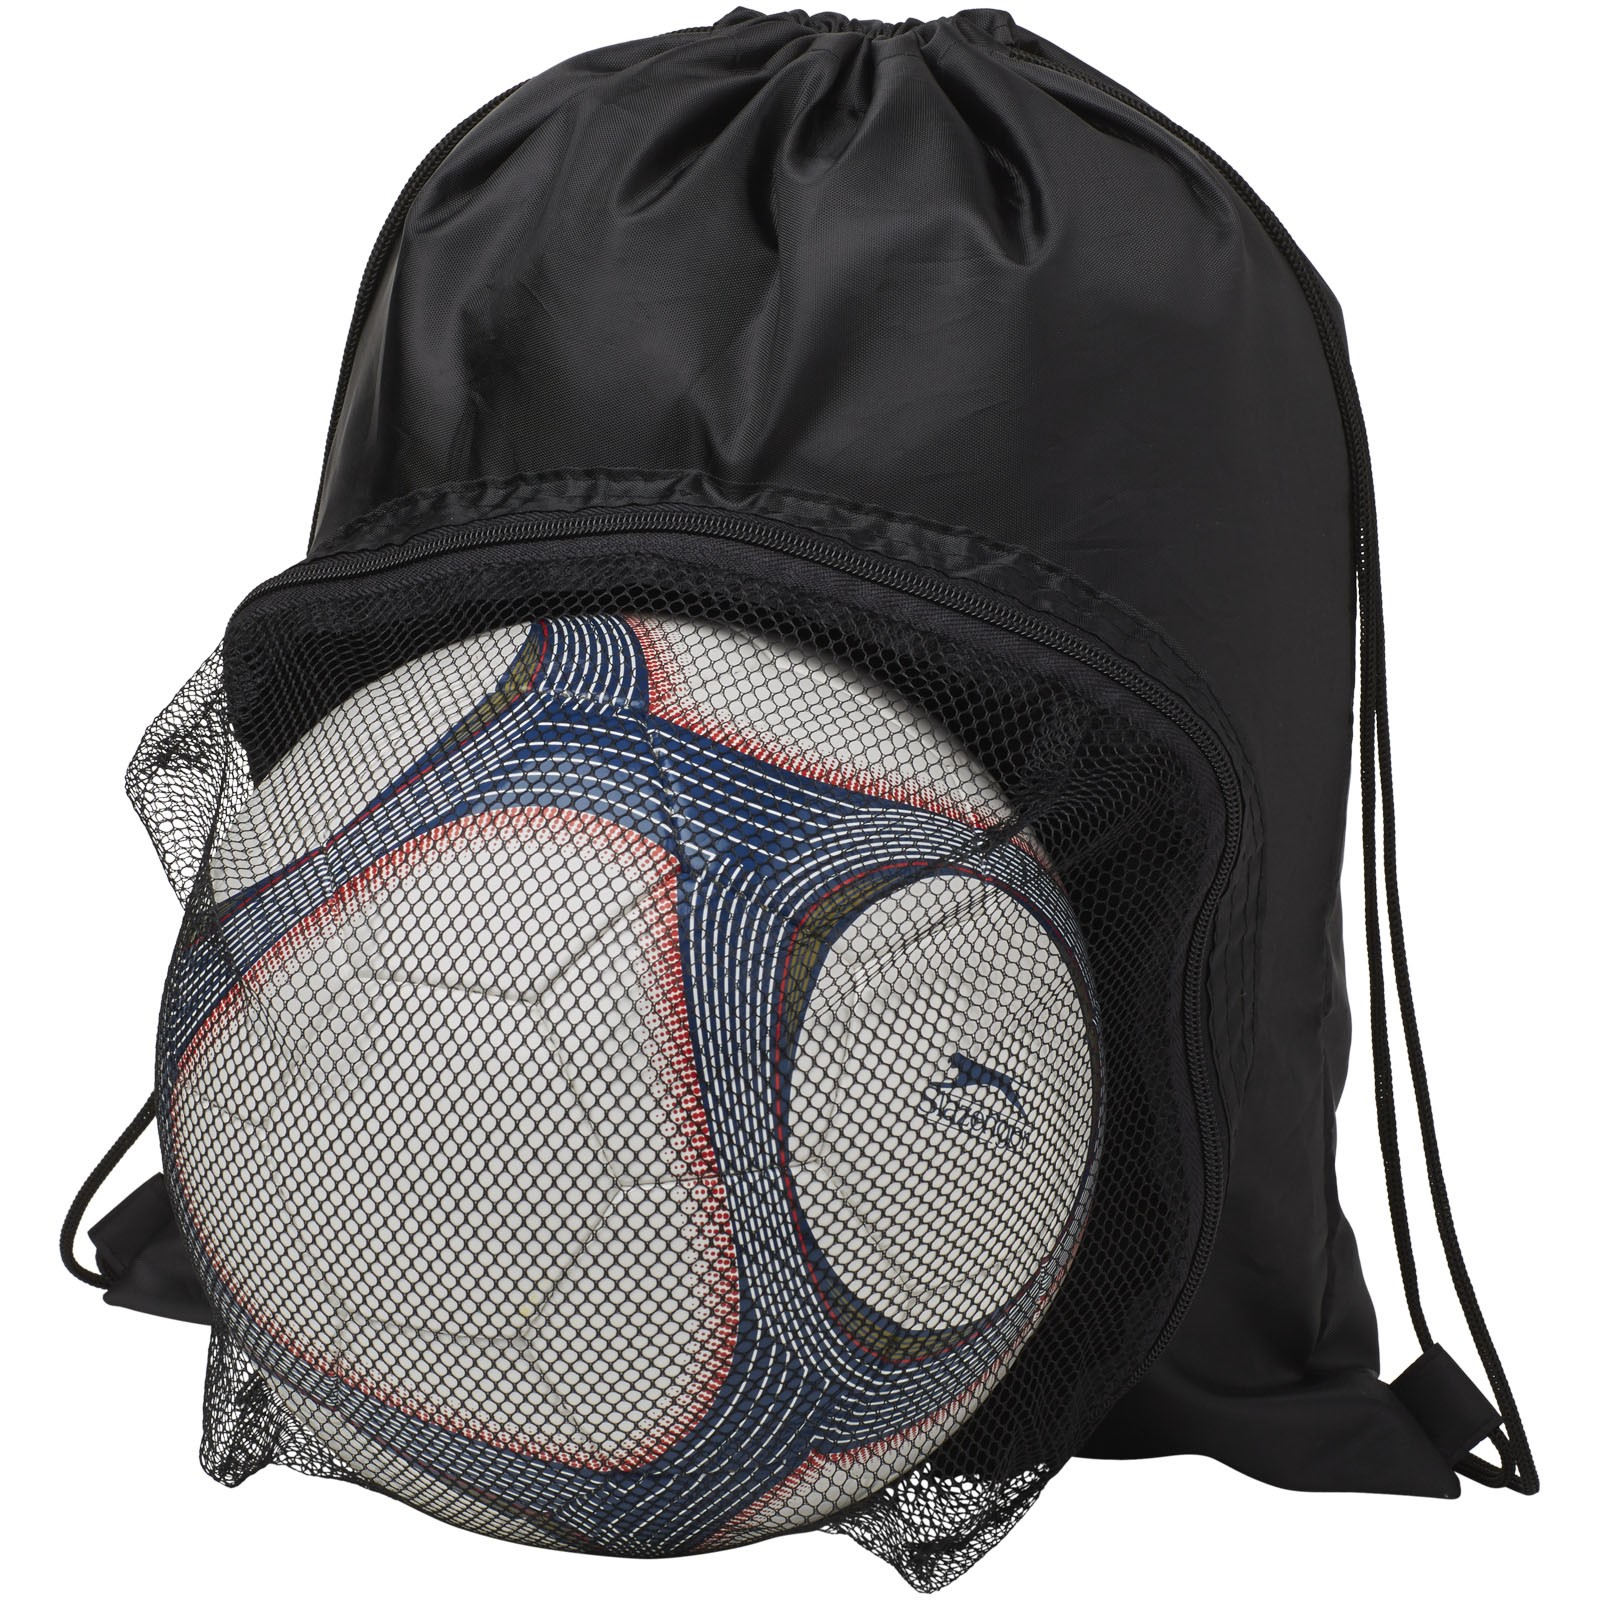 Goal drawstring backpack with football compartment - Solid black